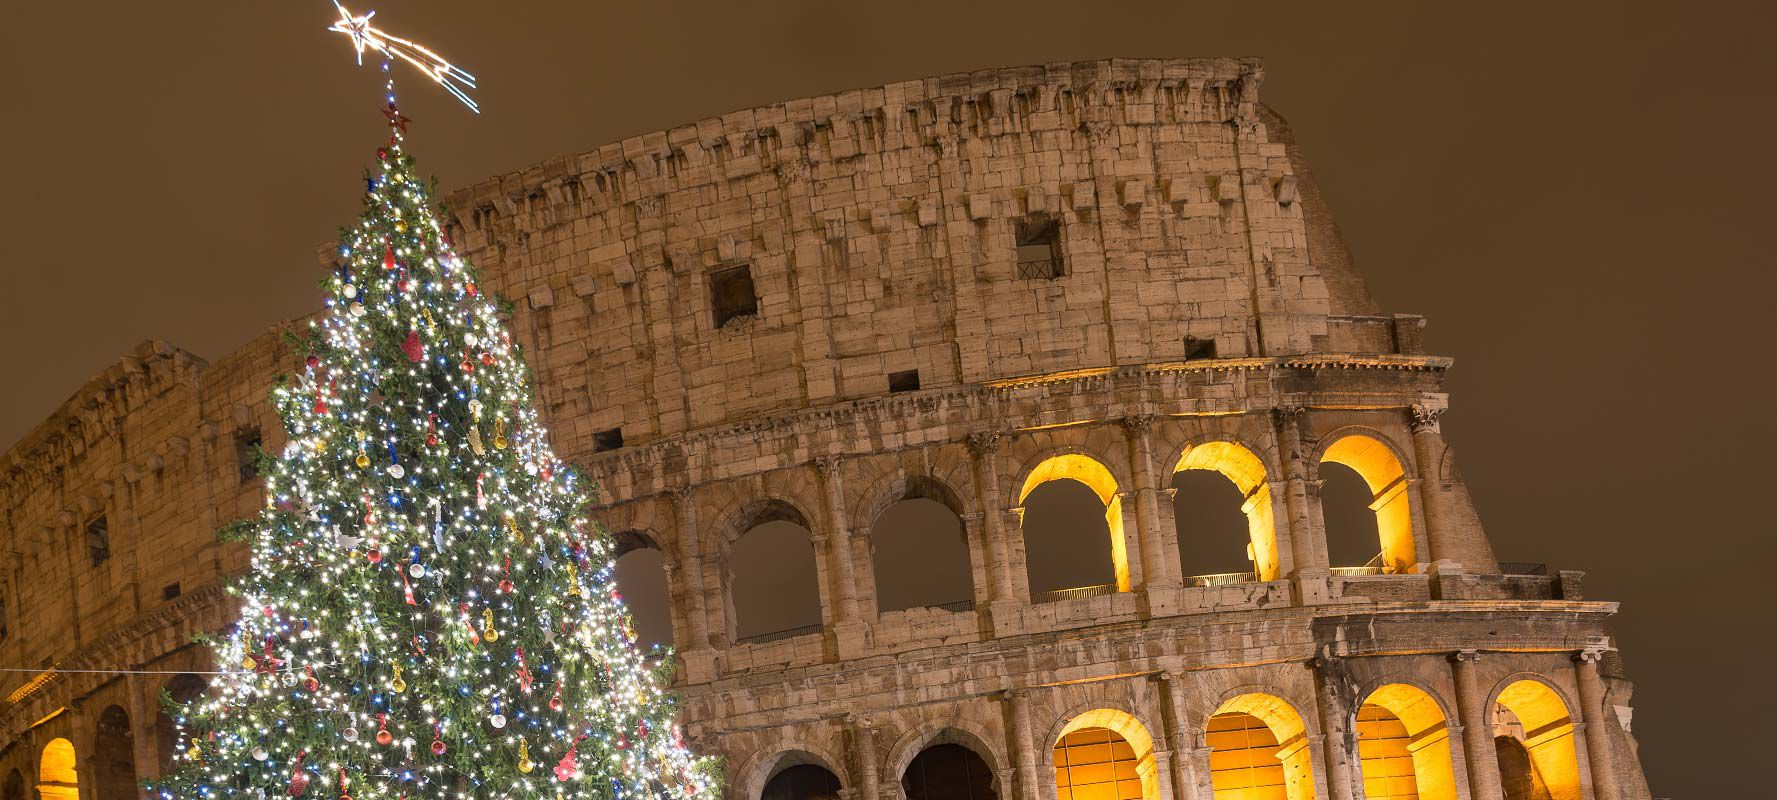 Christmas at the Coluseum in Rome